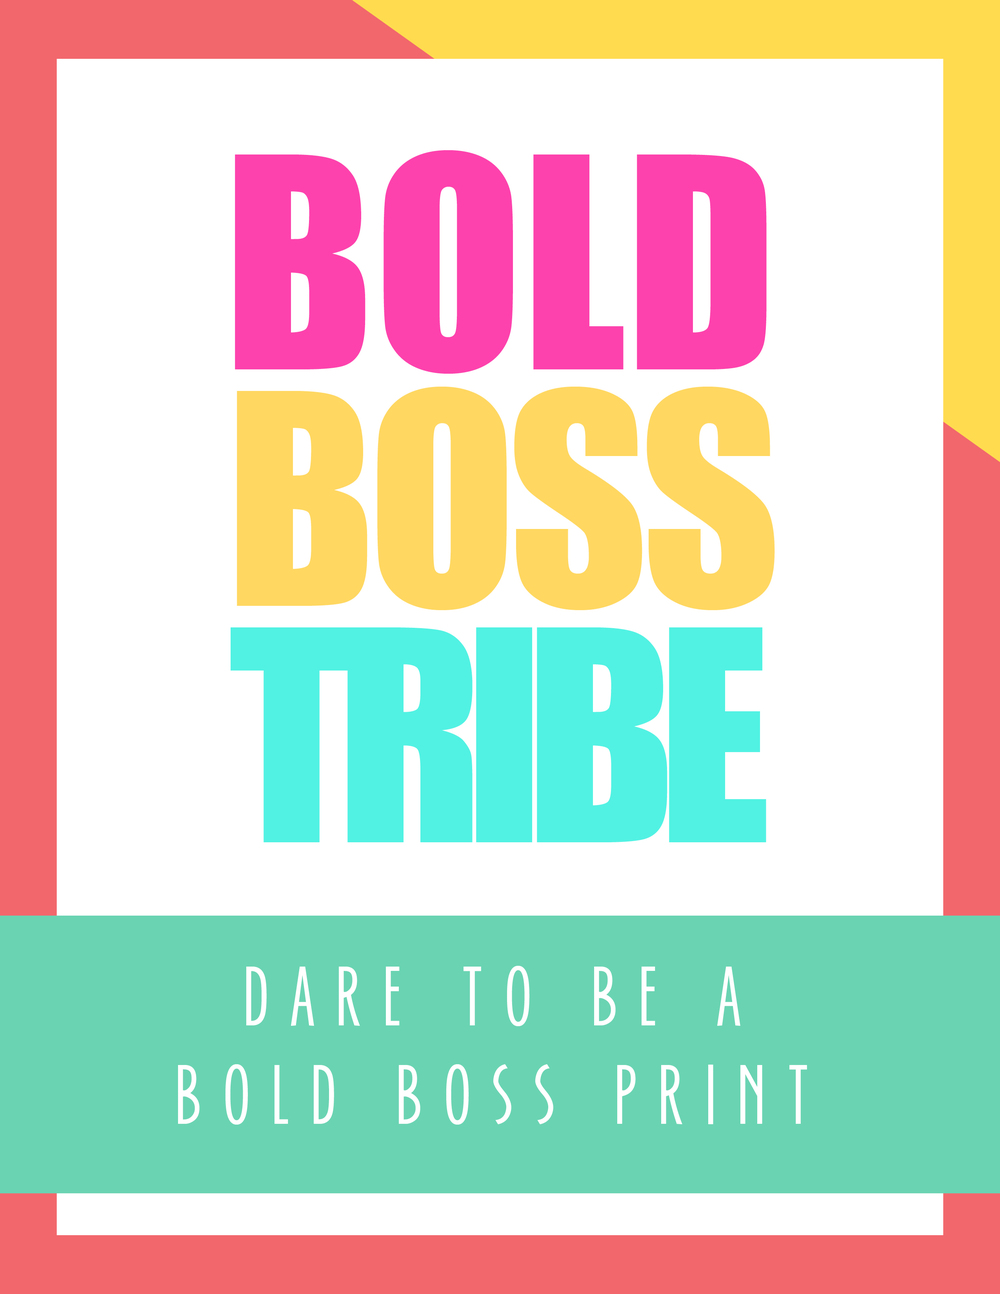 Freebies Dare to be a Bold Boss